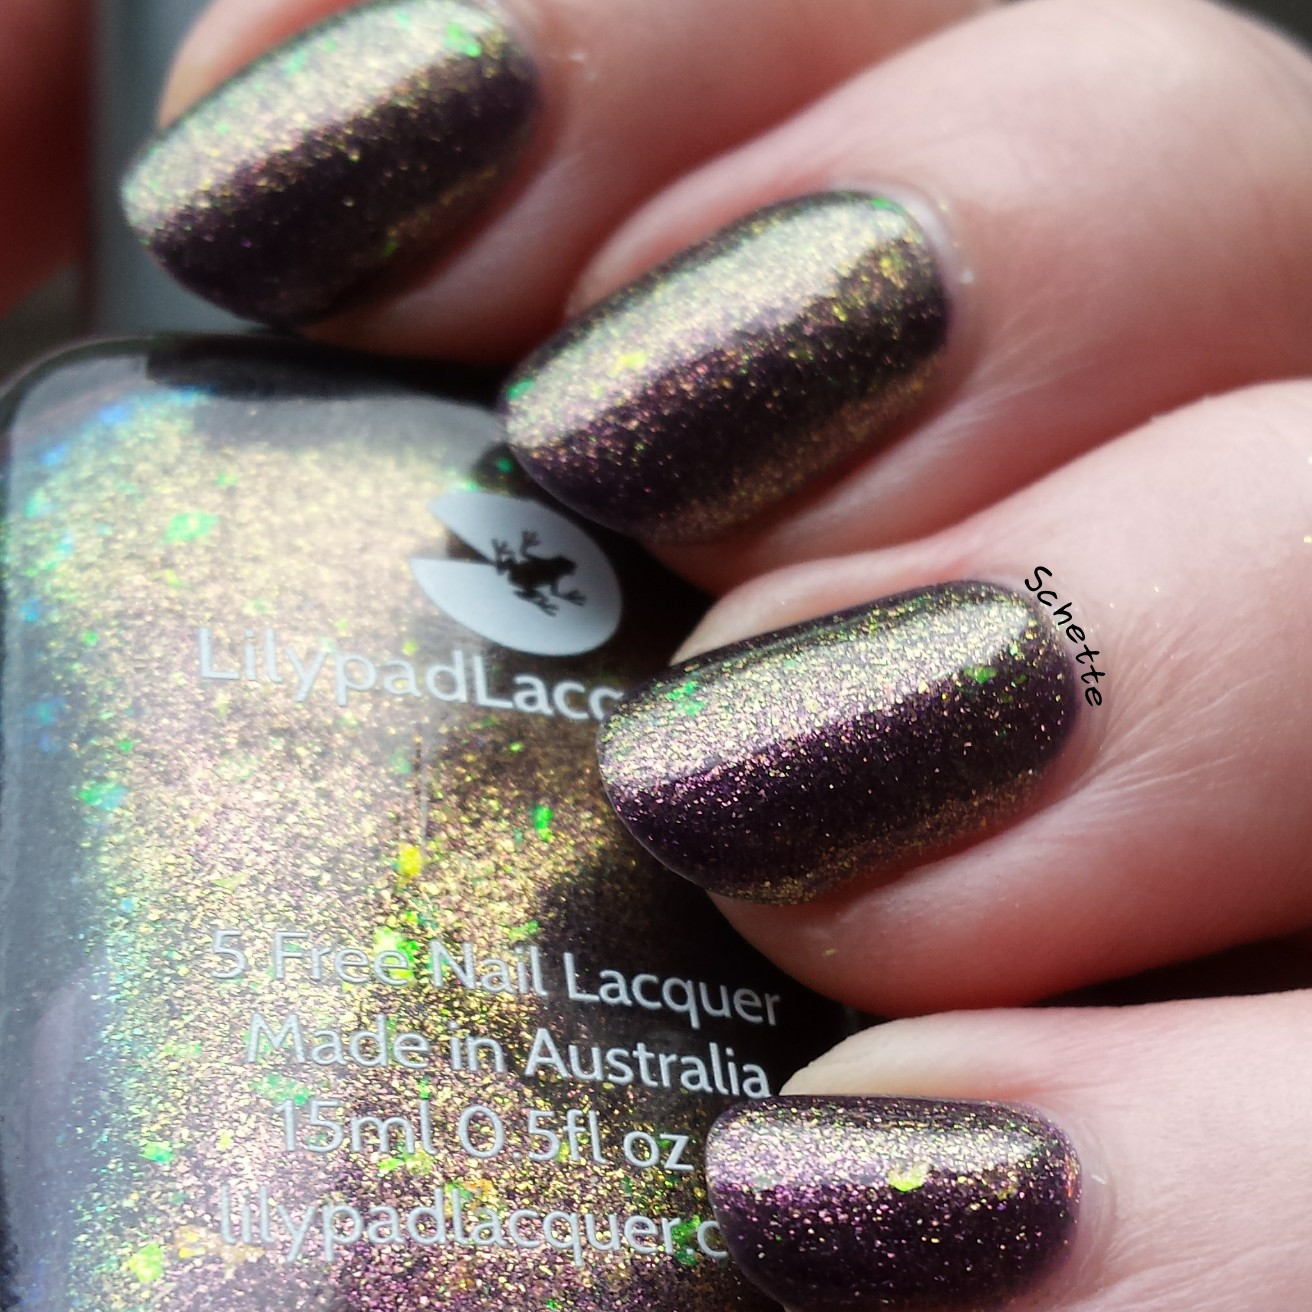 Lilypad Lacquer - Dreams come true